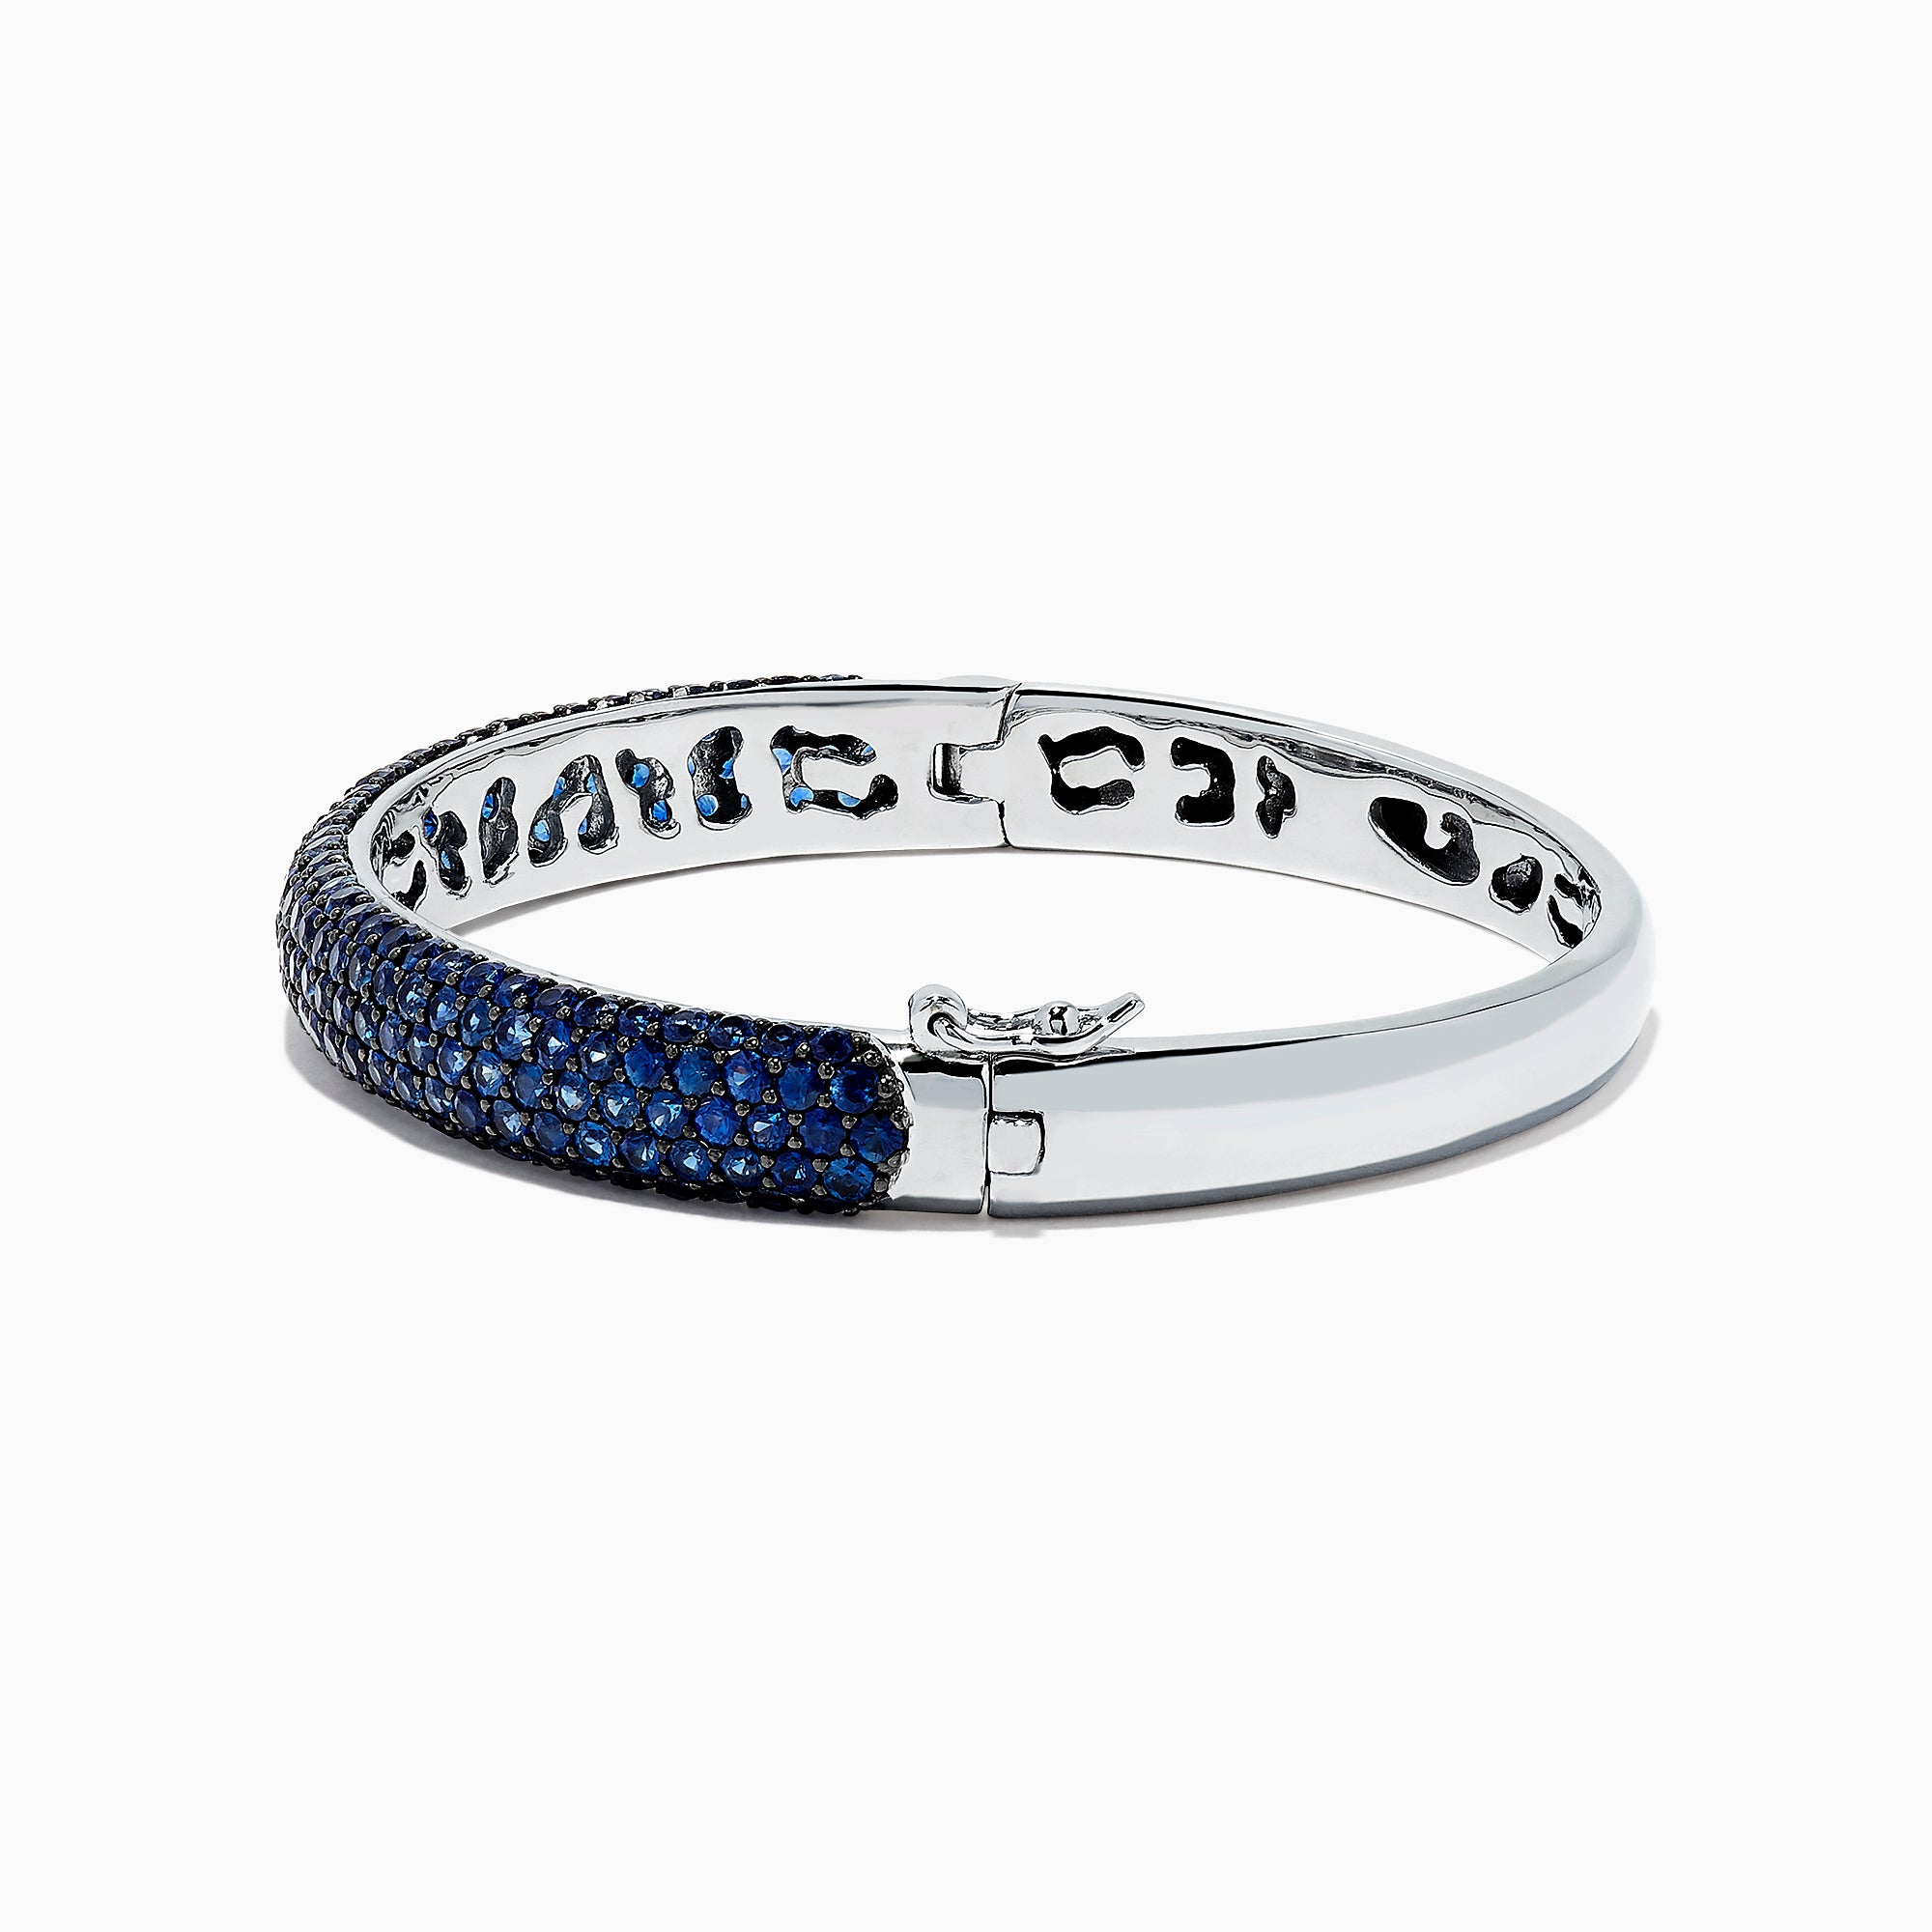 Effy 925 Sterling Silver Blue Sapphire Bangle, 11.15 TCW